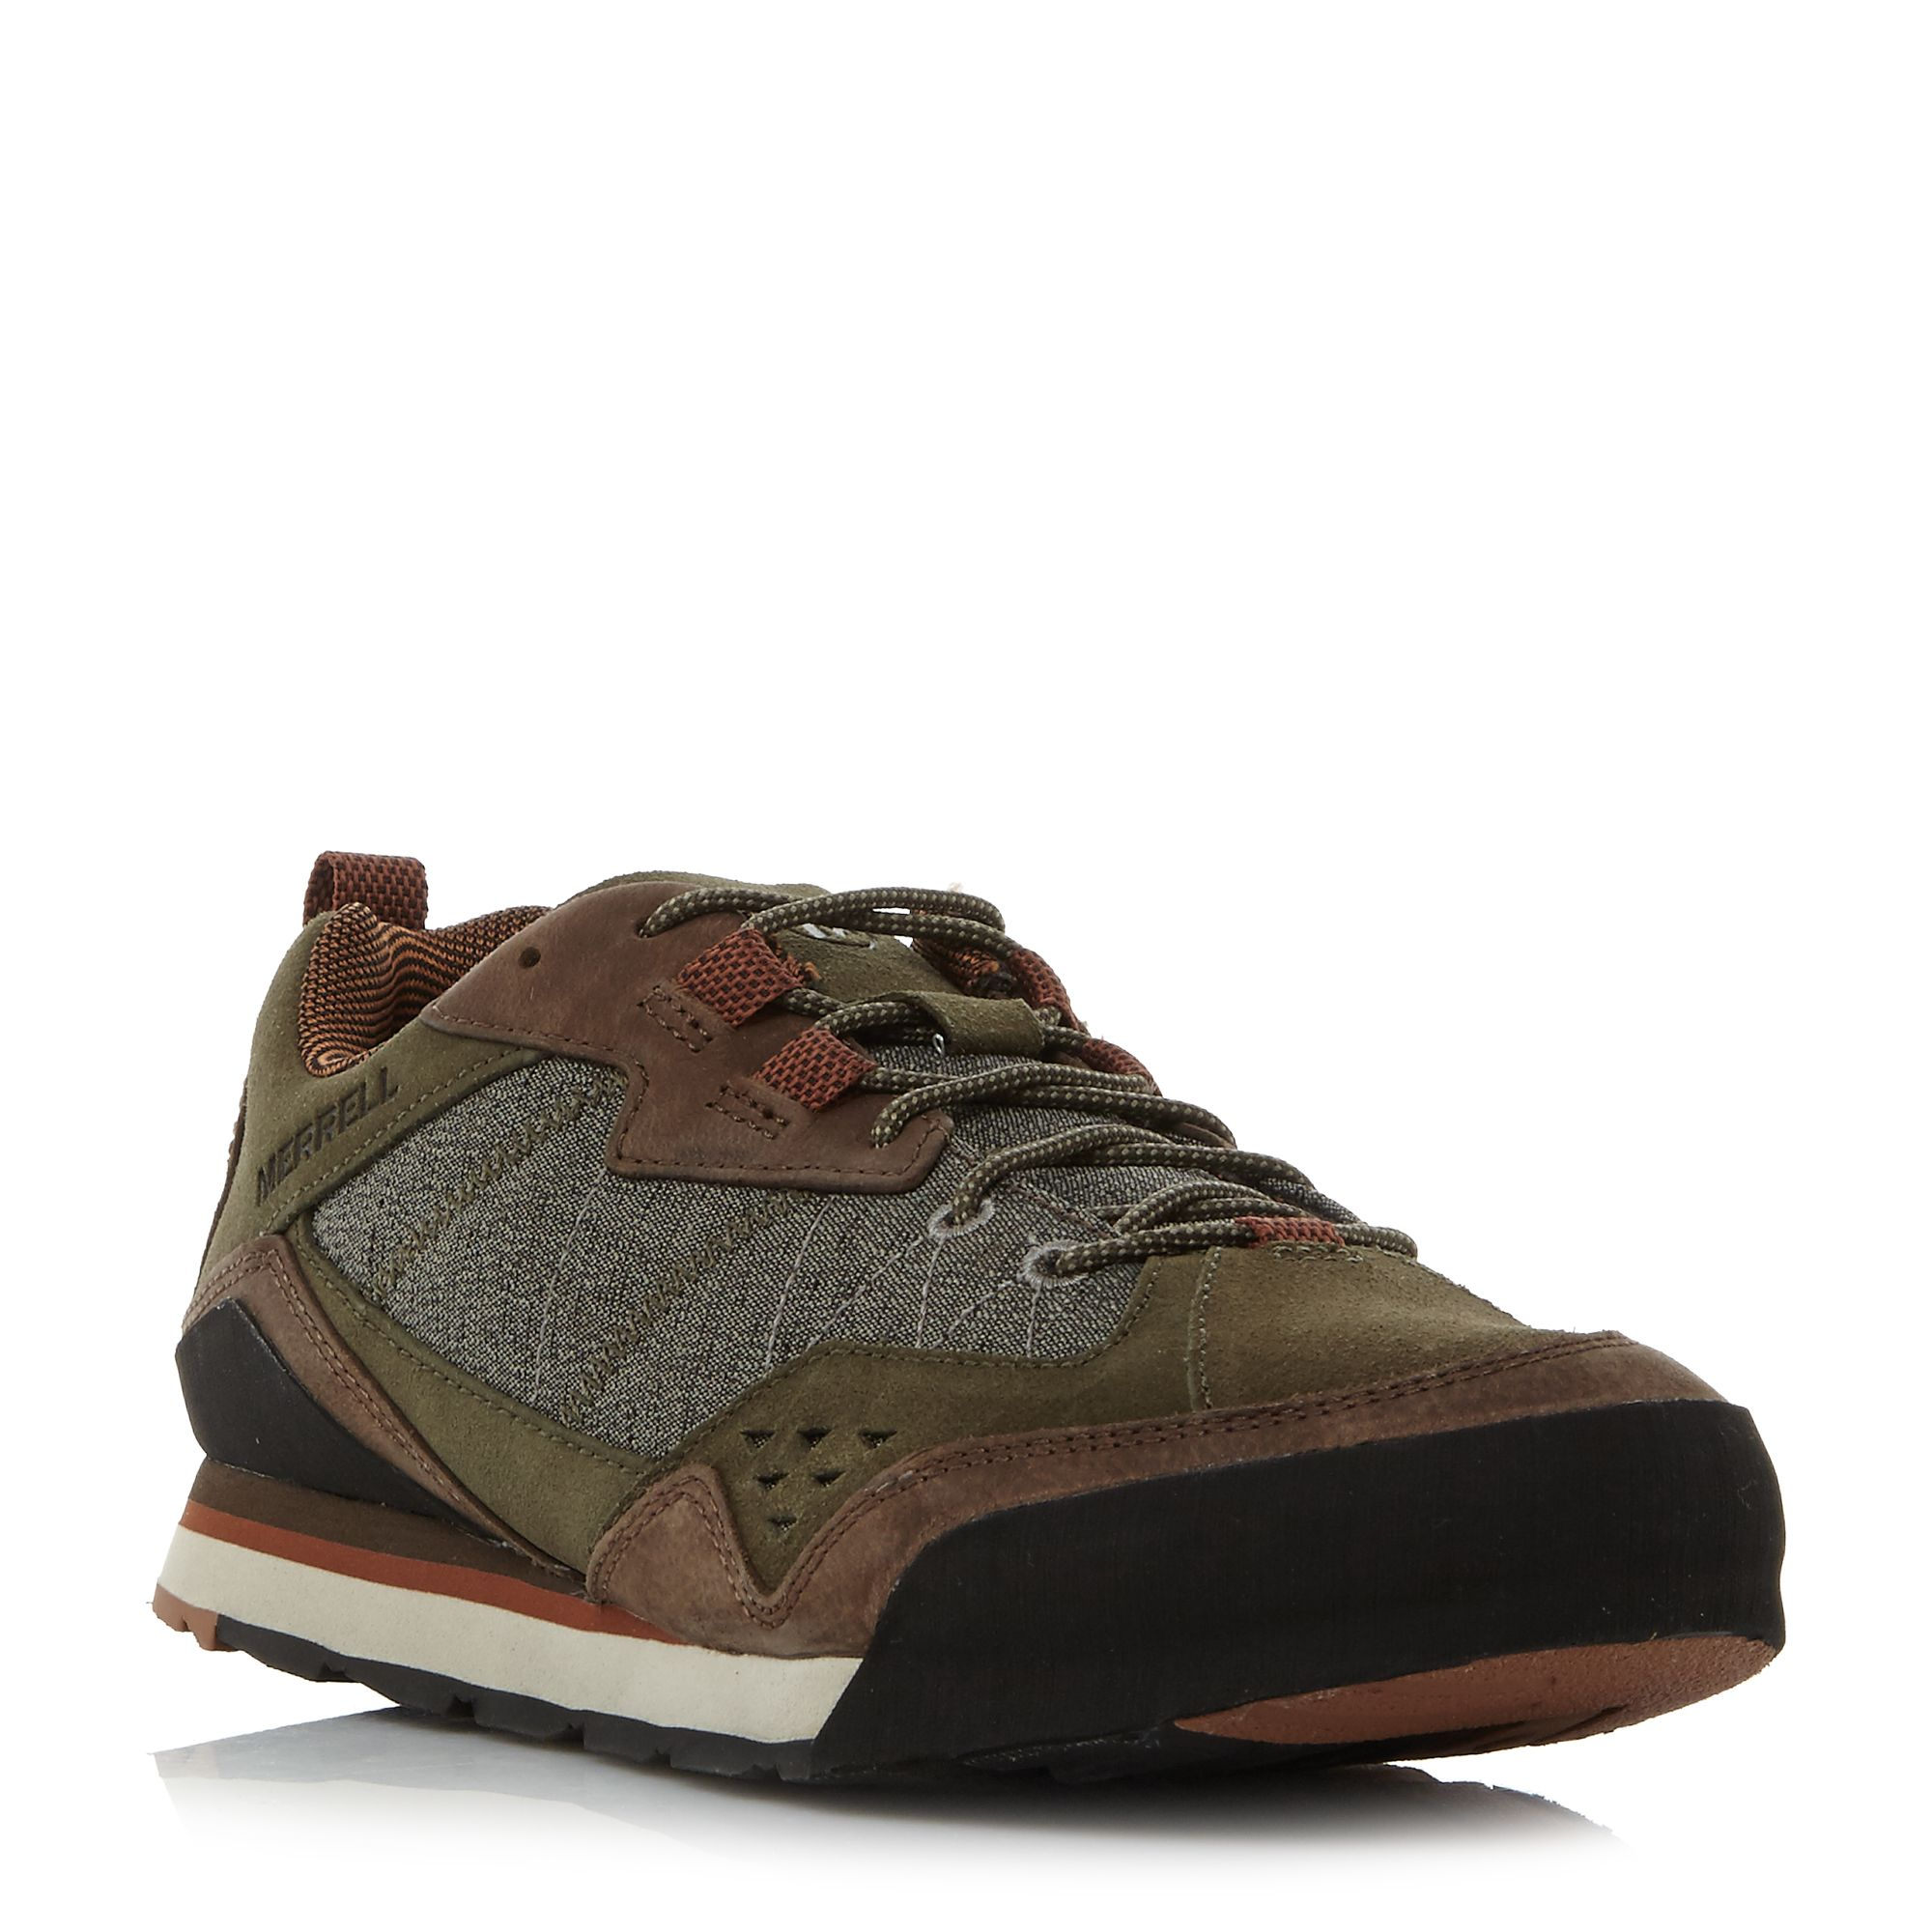 Merrell Burnt rock runner sole shoe ...